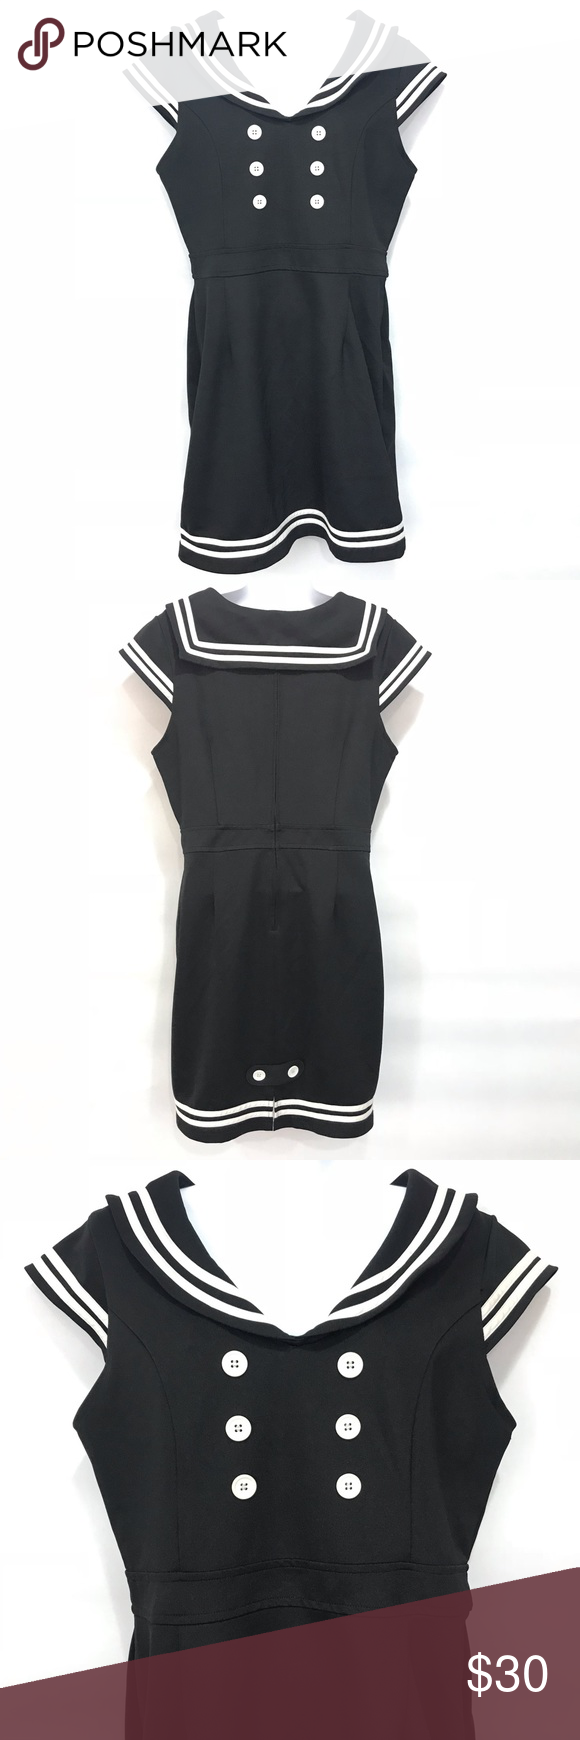 HELL BUNNY Vixen Sailor Cos Play Costume Emo Dress #emodresses I just added this listing on Poshmark: HELL BUNNY Vixen Sailor Cos Play Costume Emo Dress. #shopmycloset #poshmark #fashion #shopping #style #forsale #Hell Bunny #Dresses & Skirts #emodresses